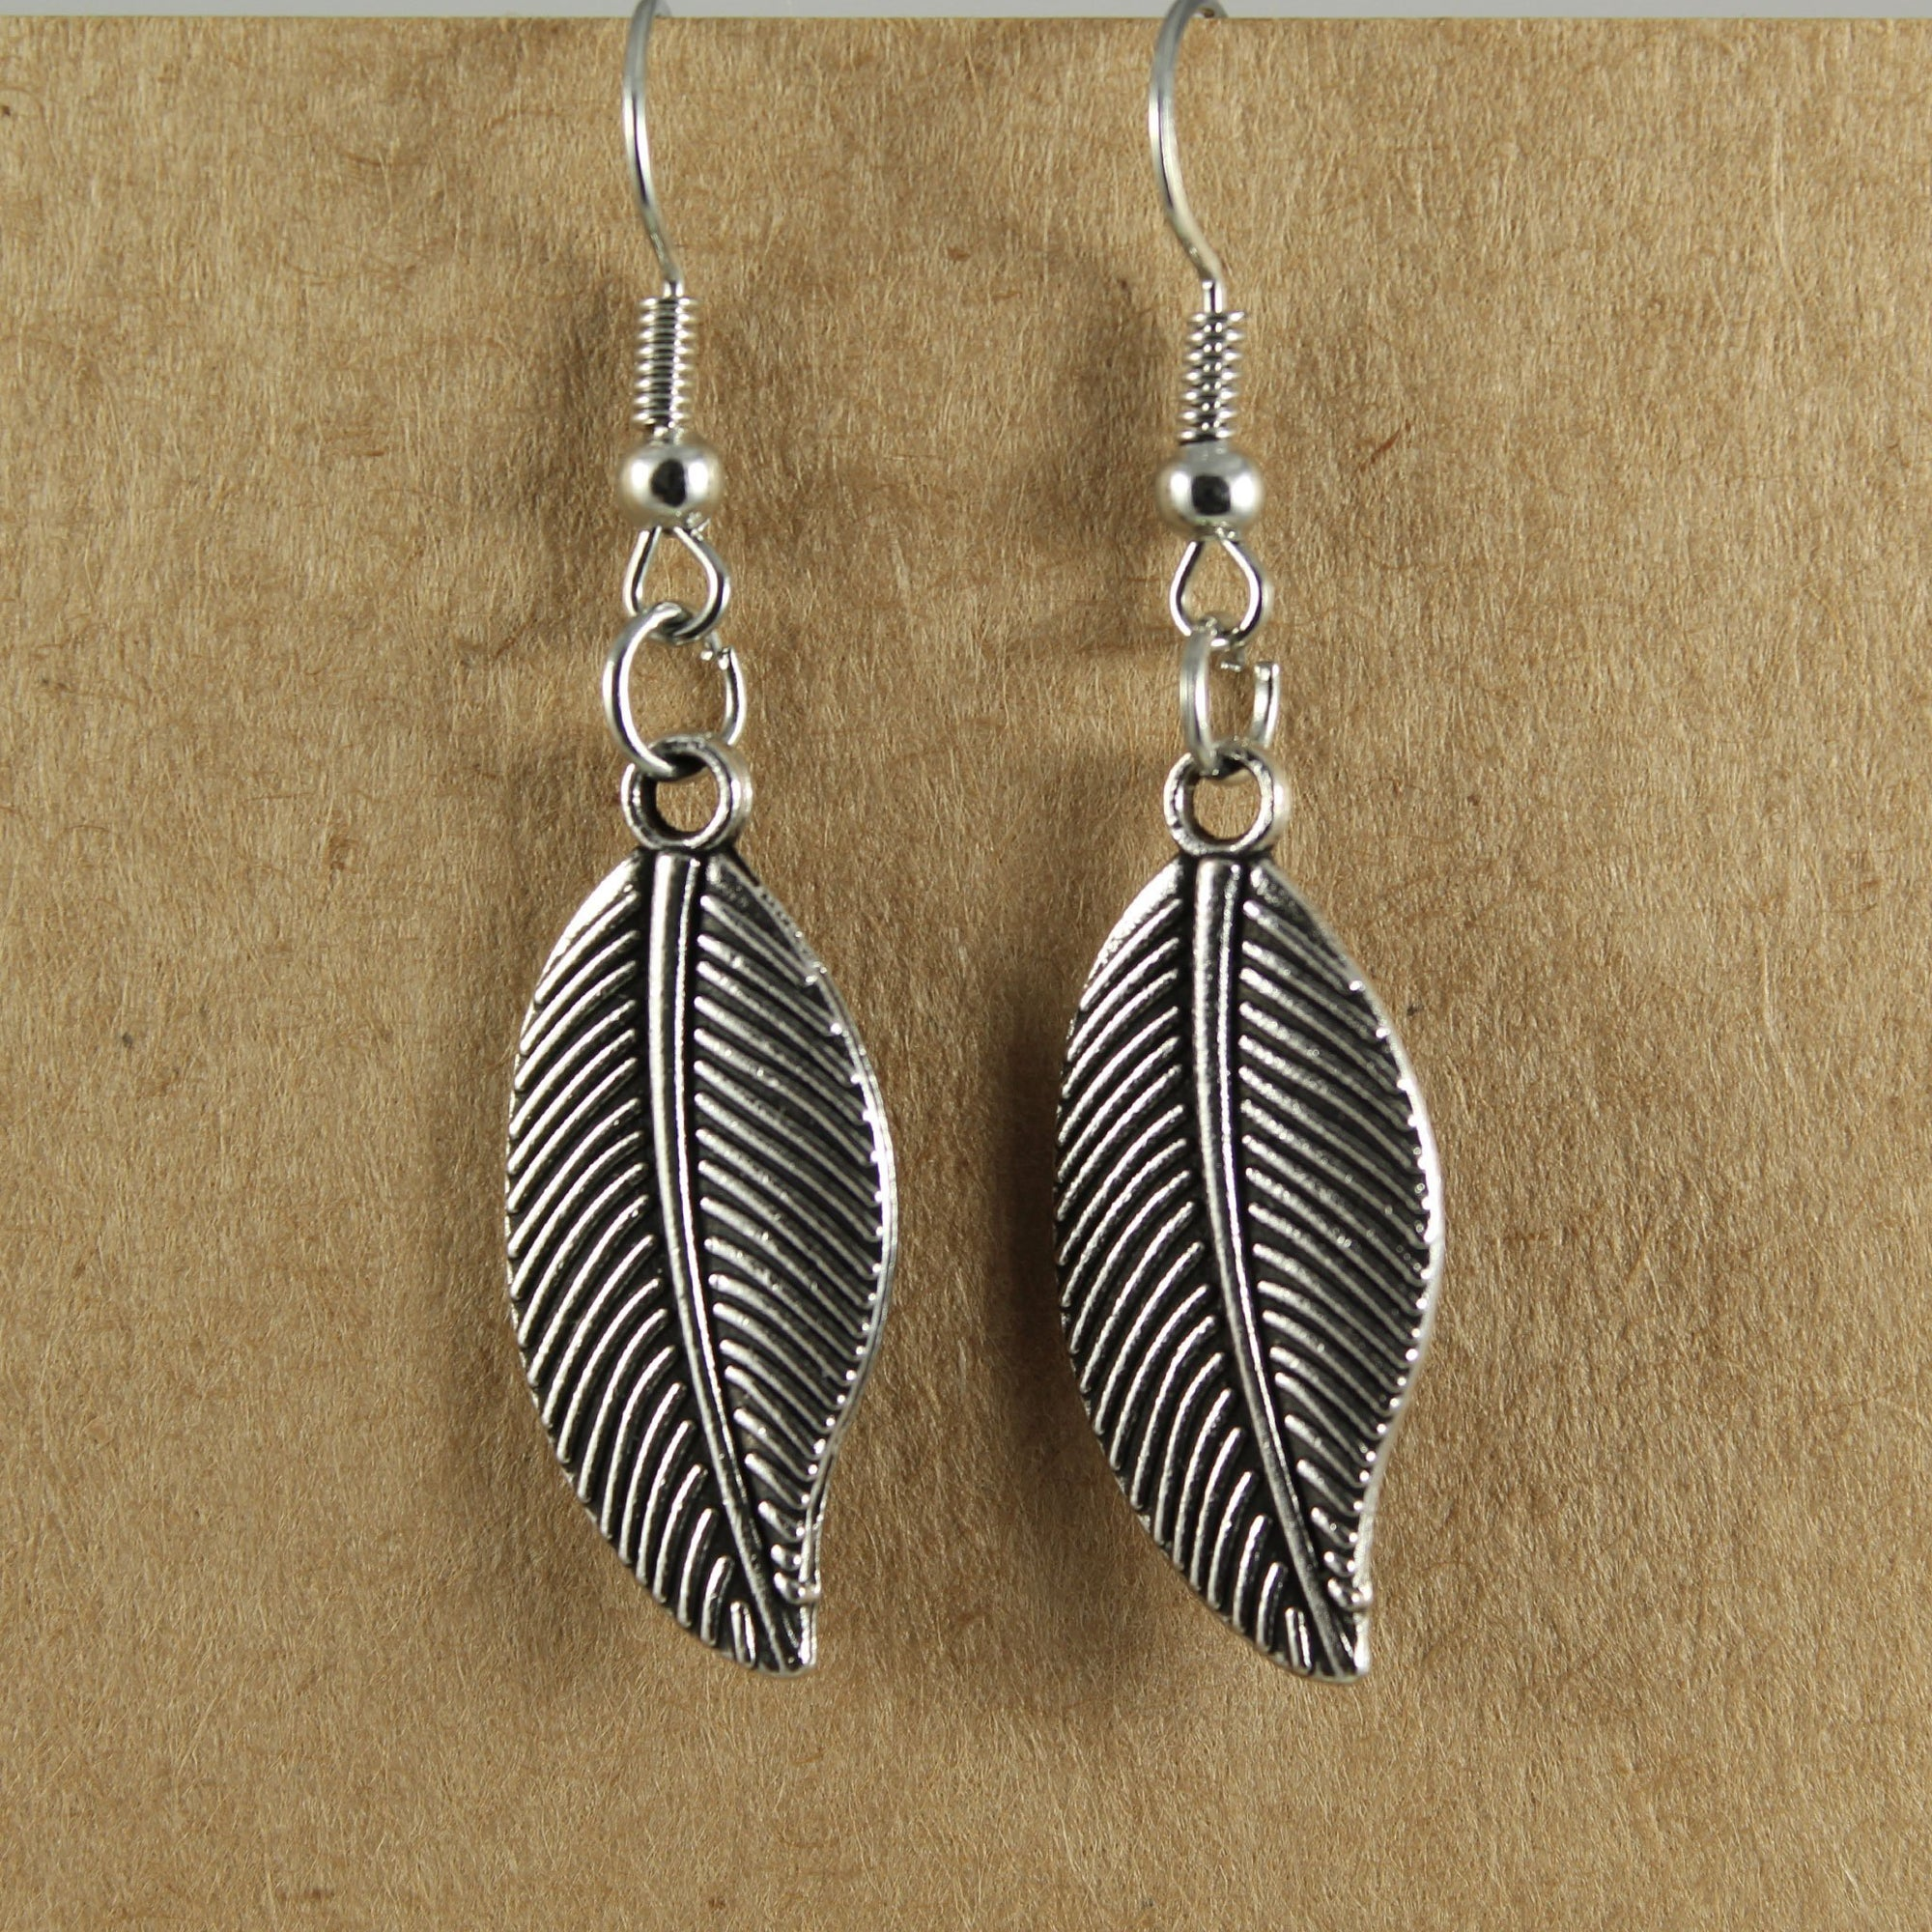 Metallic feather earrings | Earrings - The Naughty Shrew